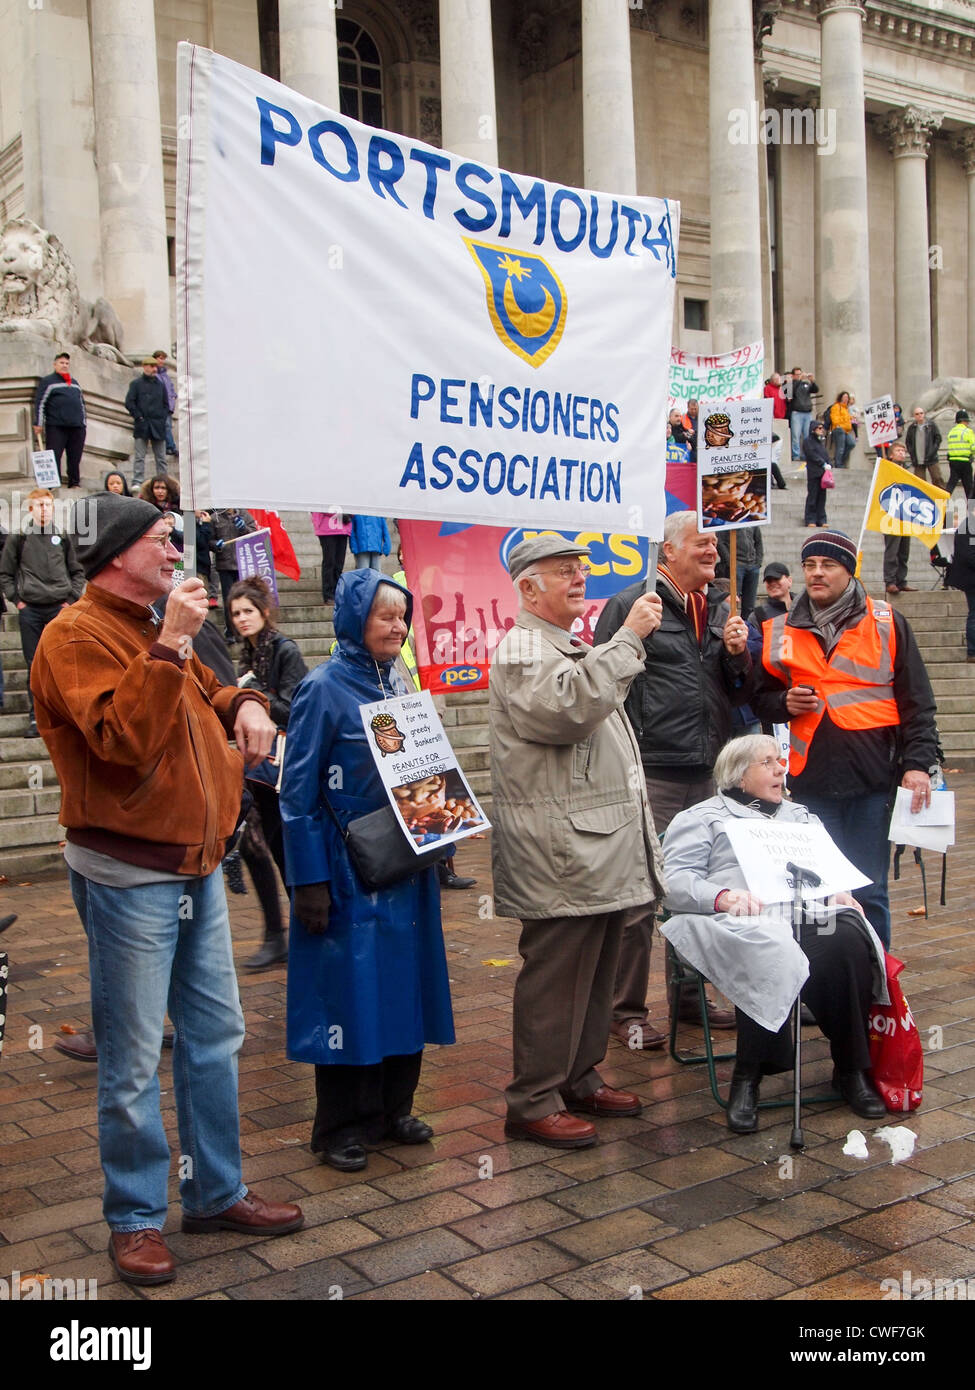 Portsmouth Pensioners Association members protest against public sector pay and pension cuts. - Stock Image